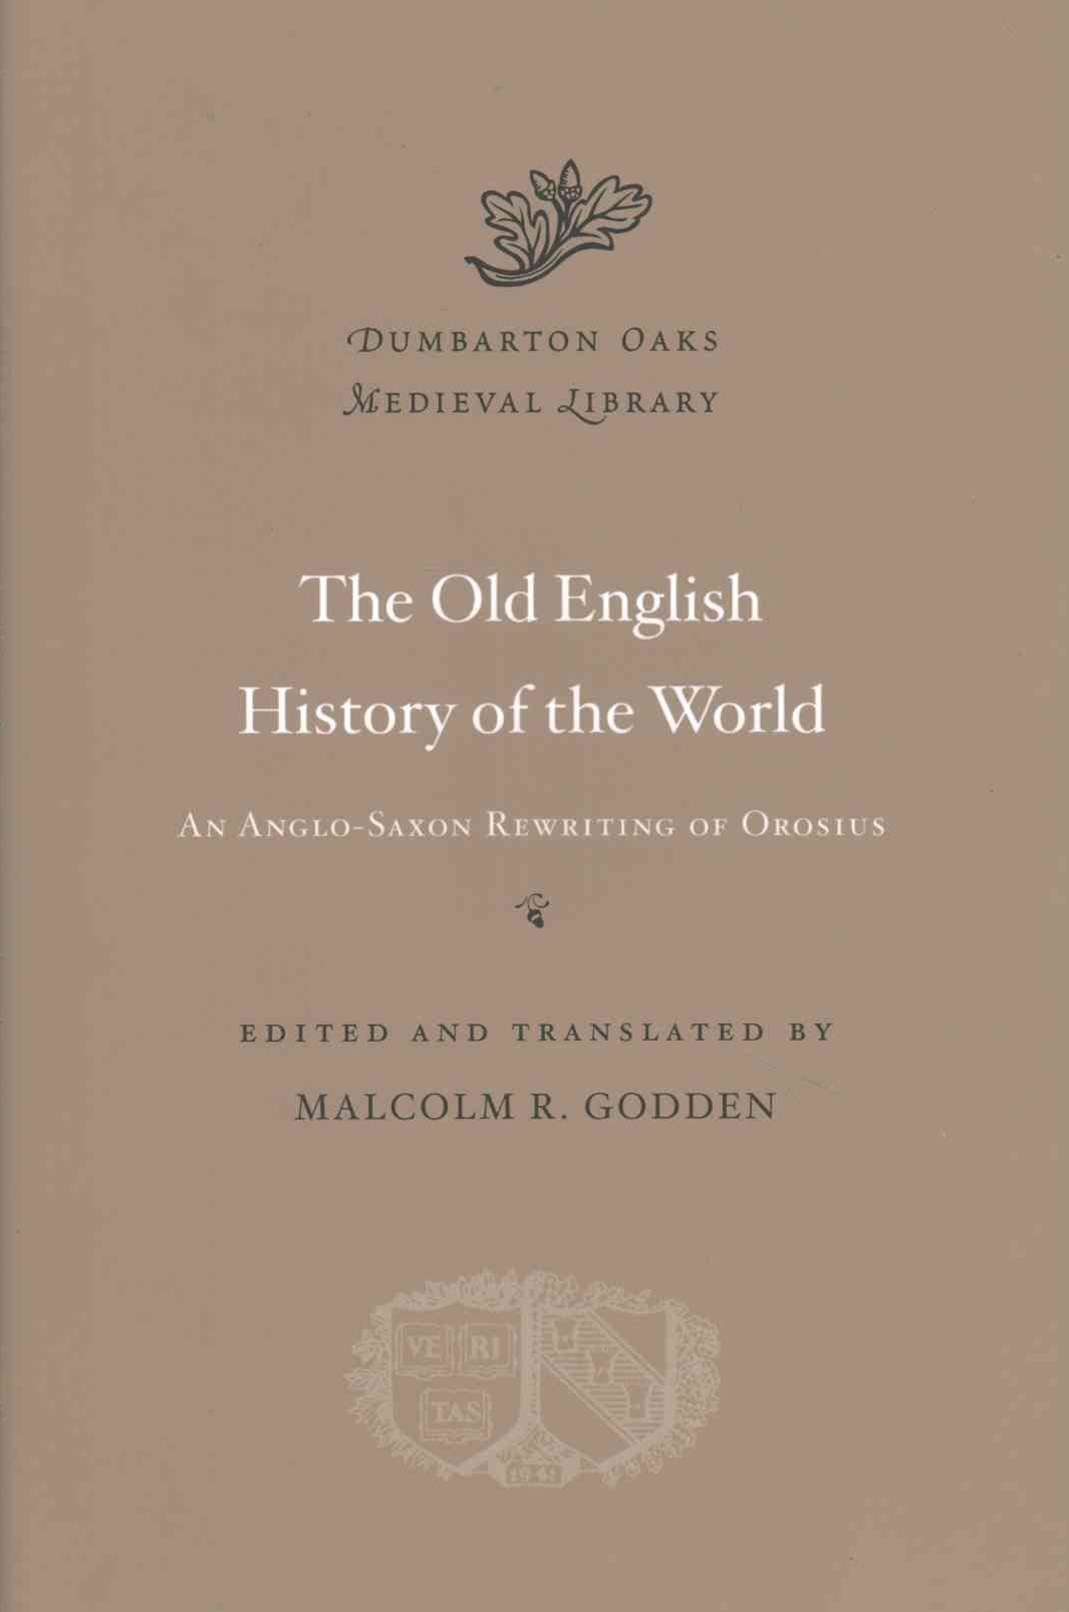 Old English History of the World - An Anglo-Saxon Rewriting of Orosius